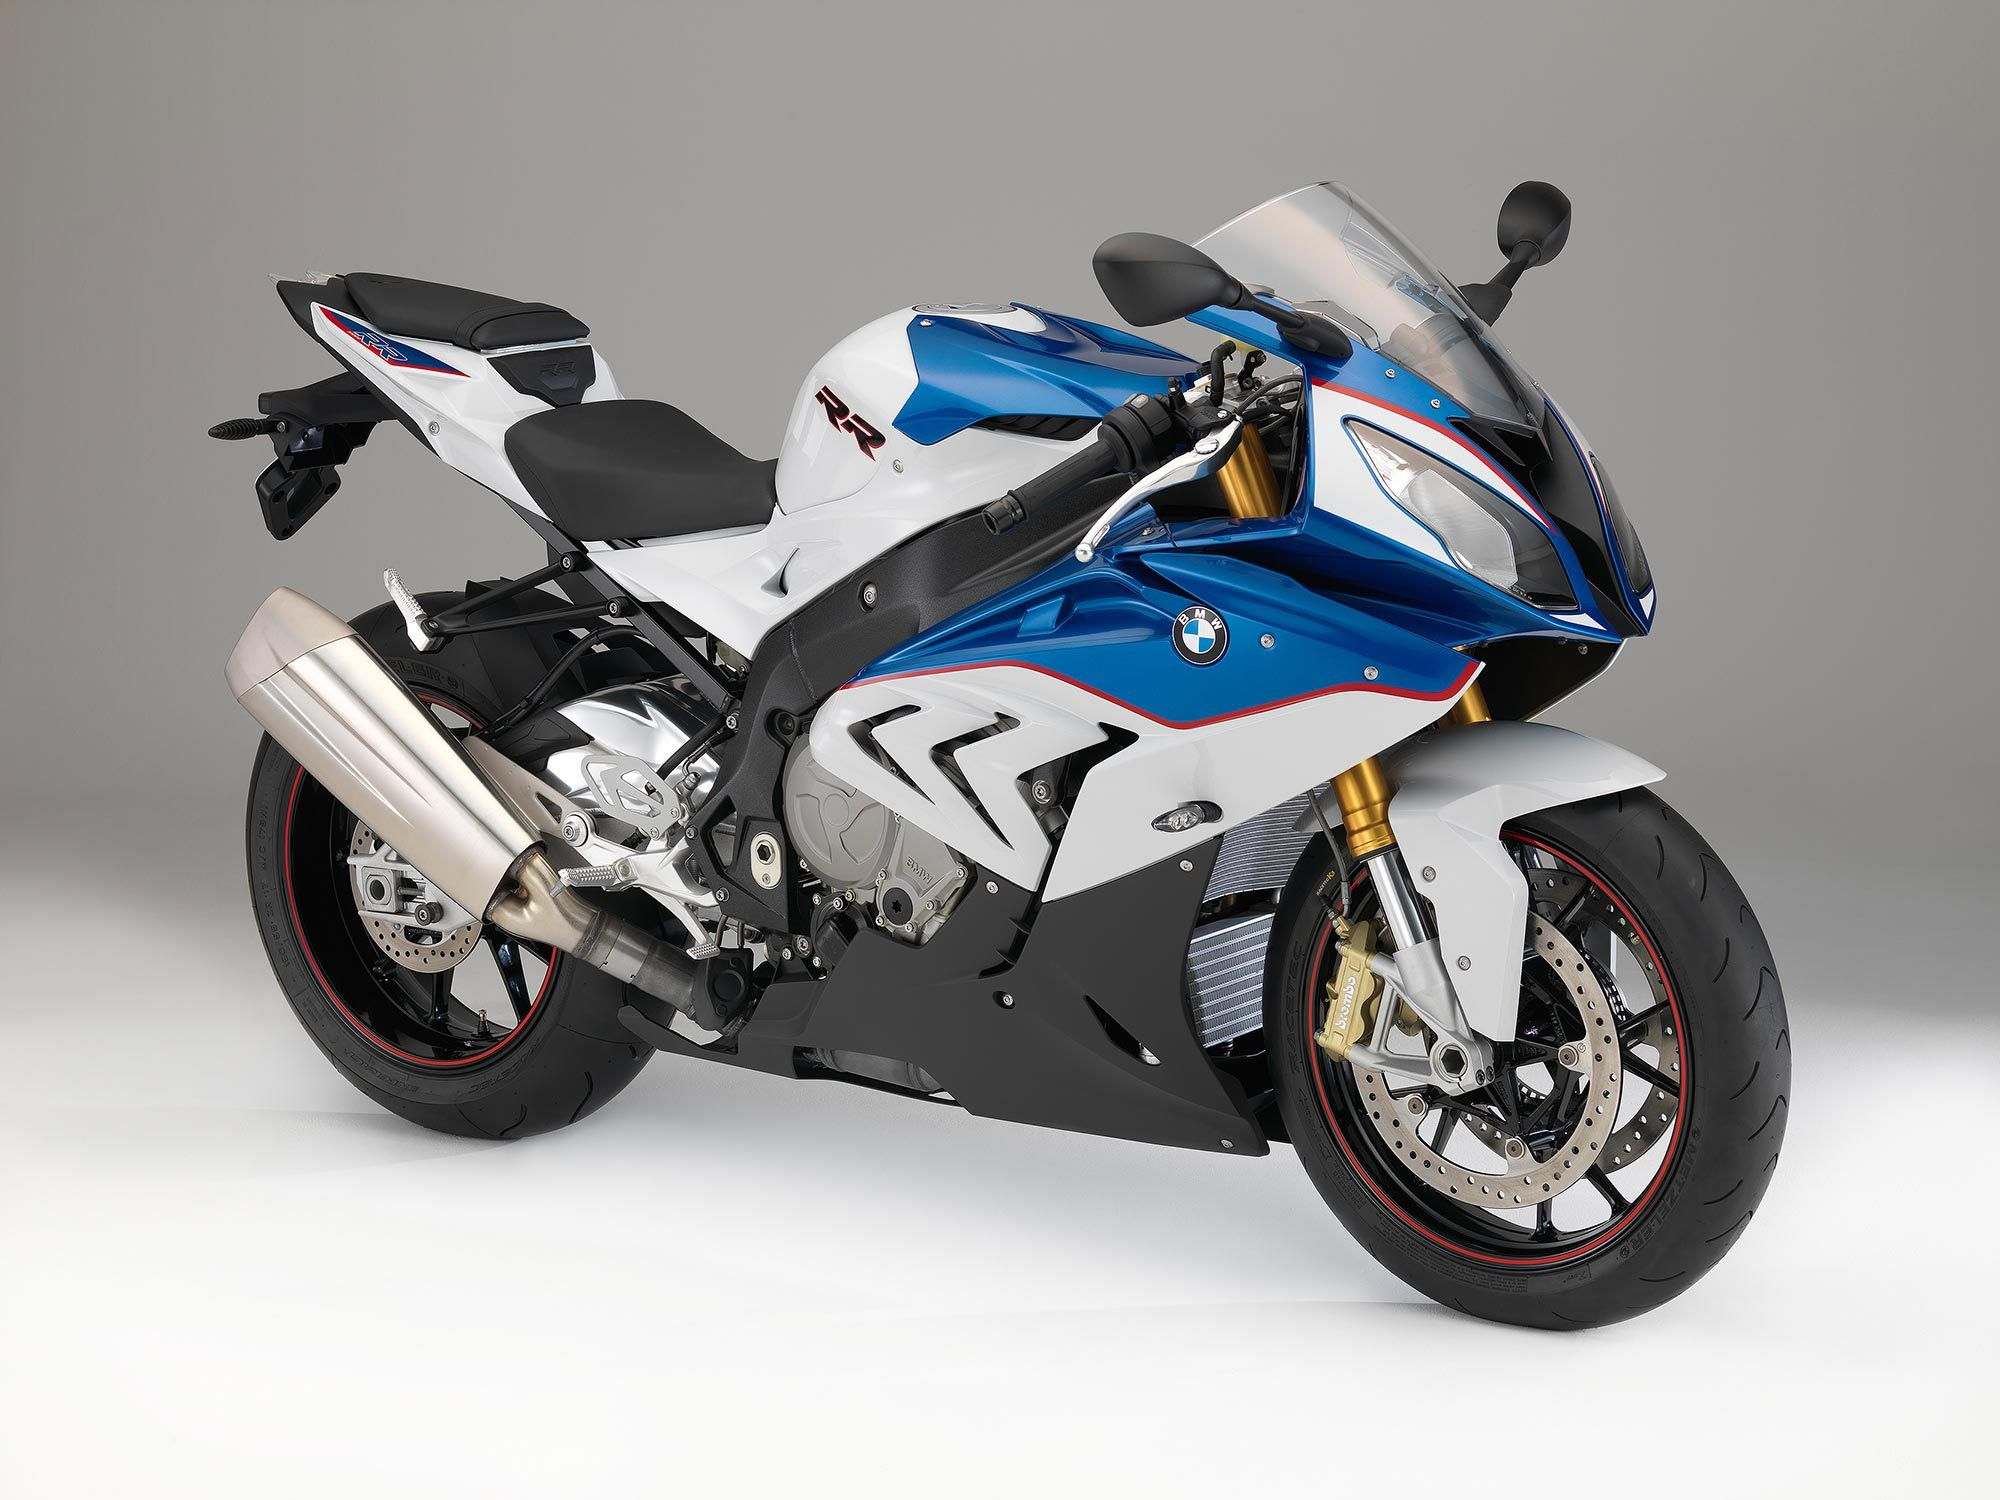 2015 BMW S1000RR 199hp New Chassis Cruise Control Photo Just Add The